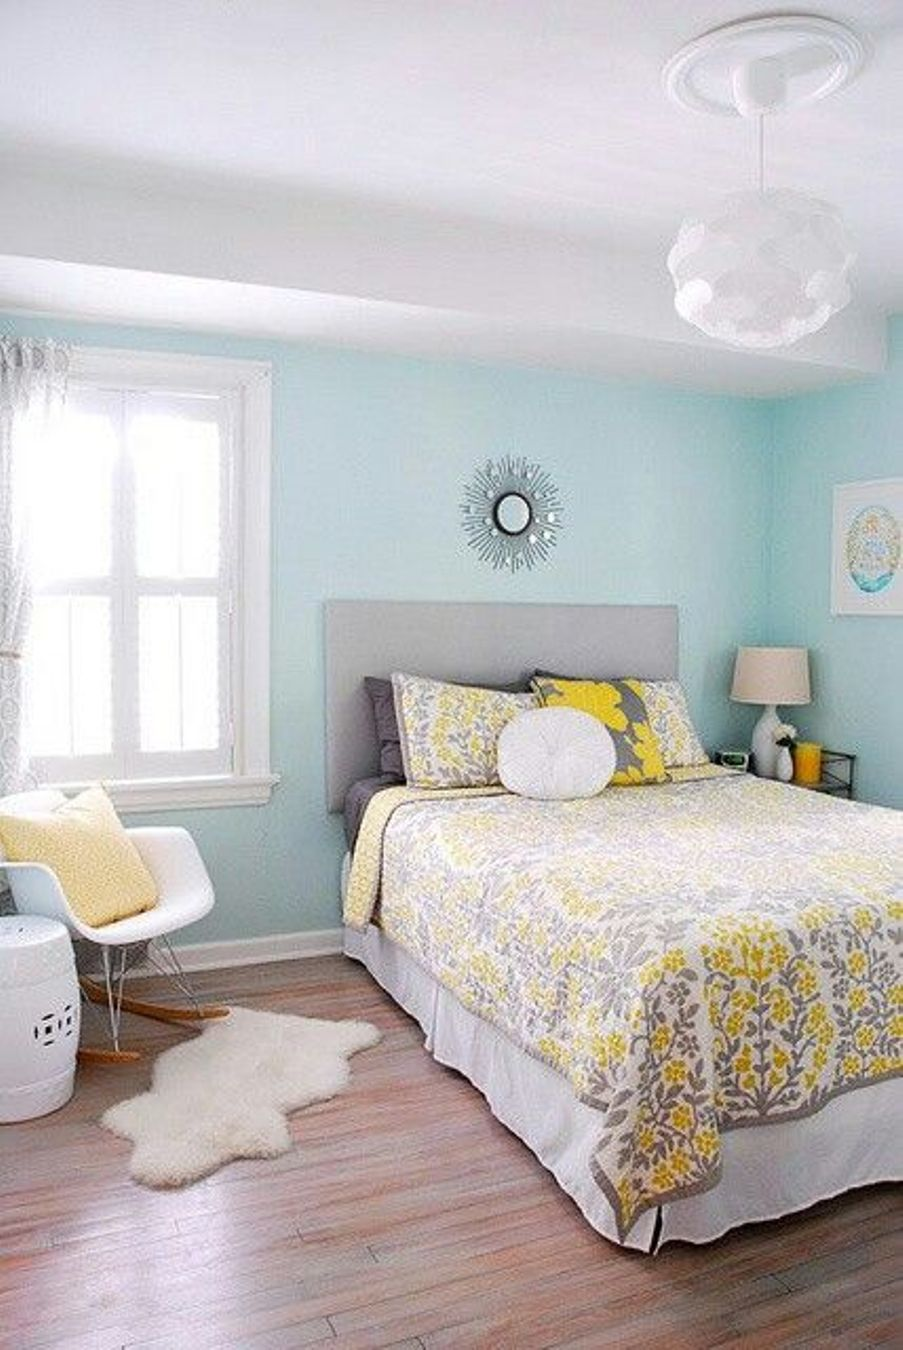 Light Blue Best Paint Colors For Small Room With Gl Window And White Ceiling Wooden